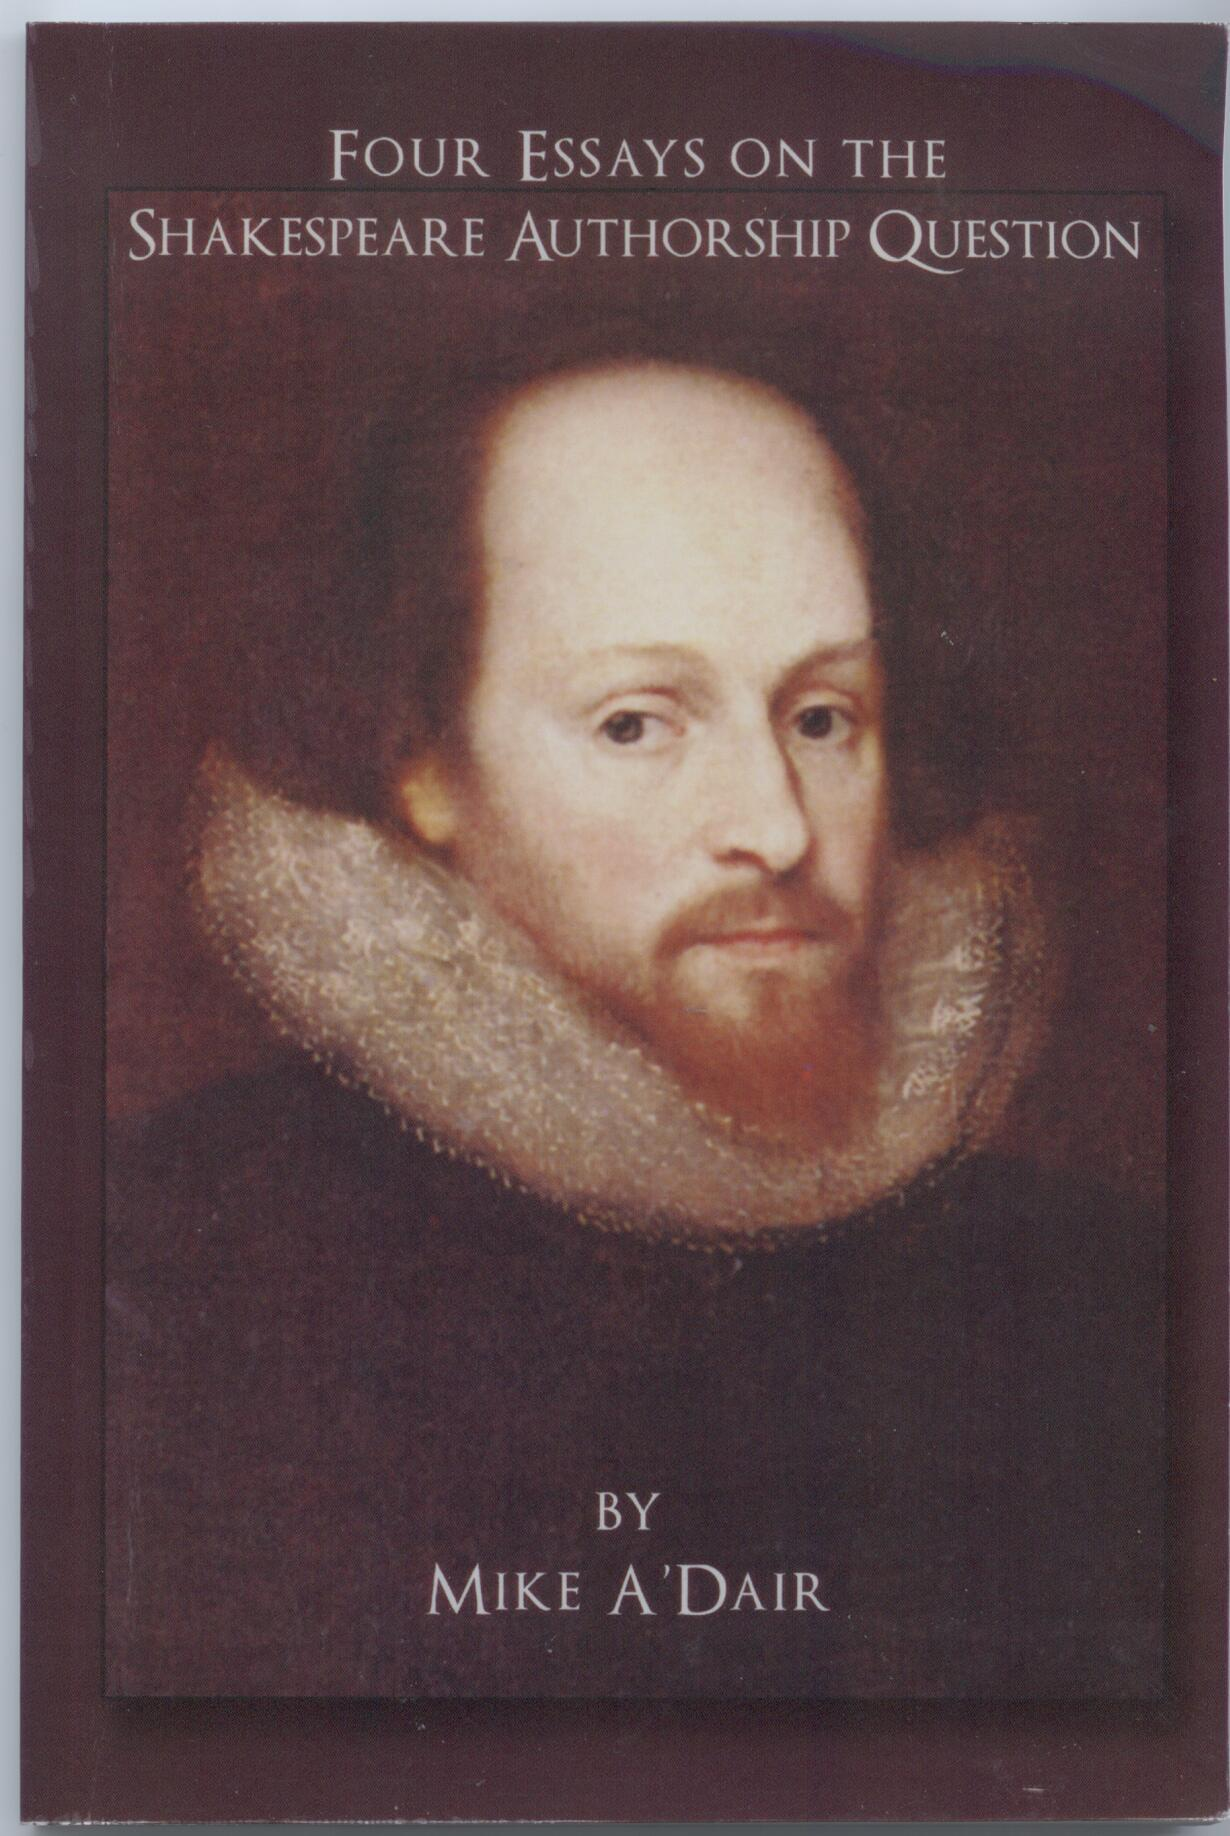 introducing a new book on shakespearean authorship and the earl of four essays on the shakespeare authorship question by mike a dair